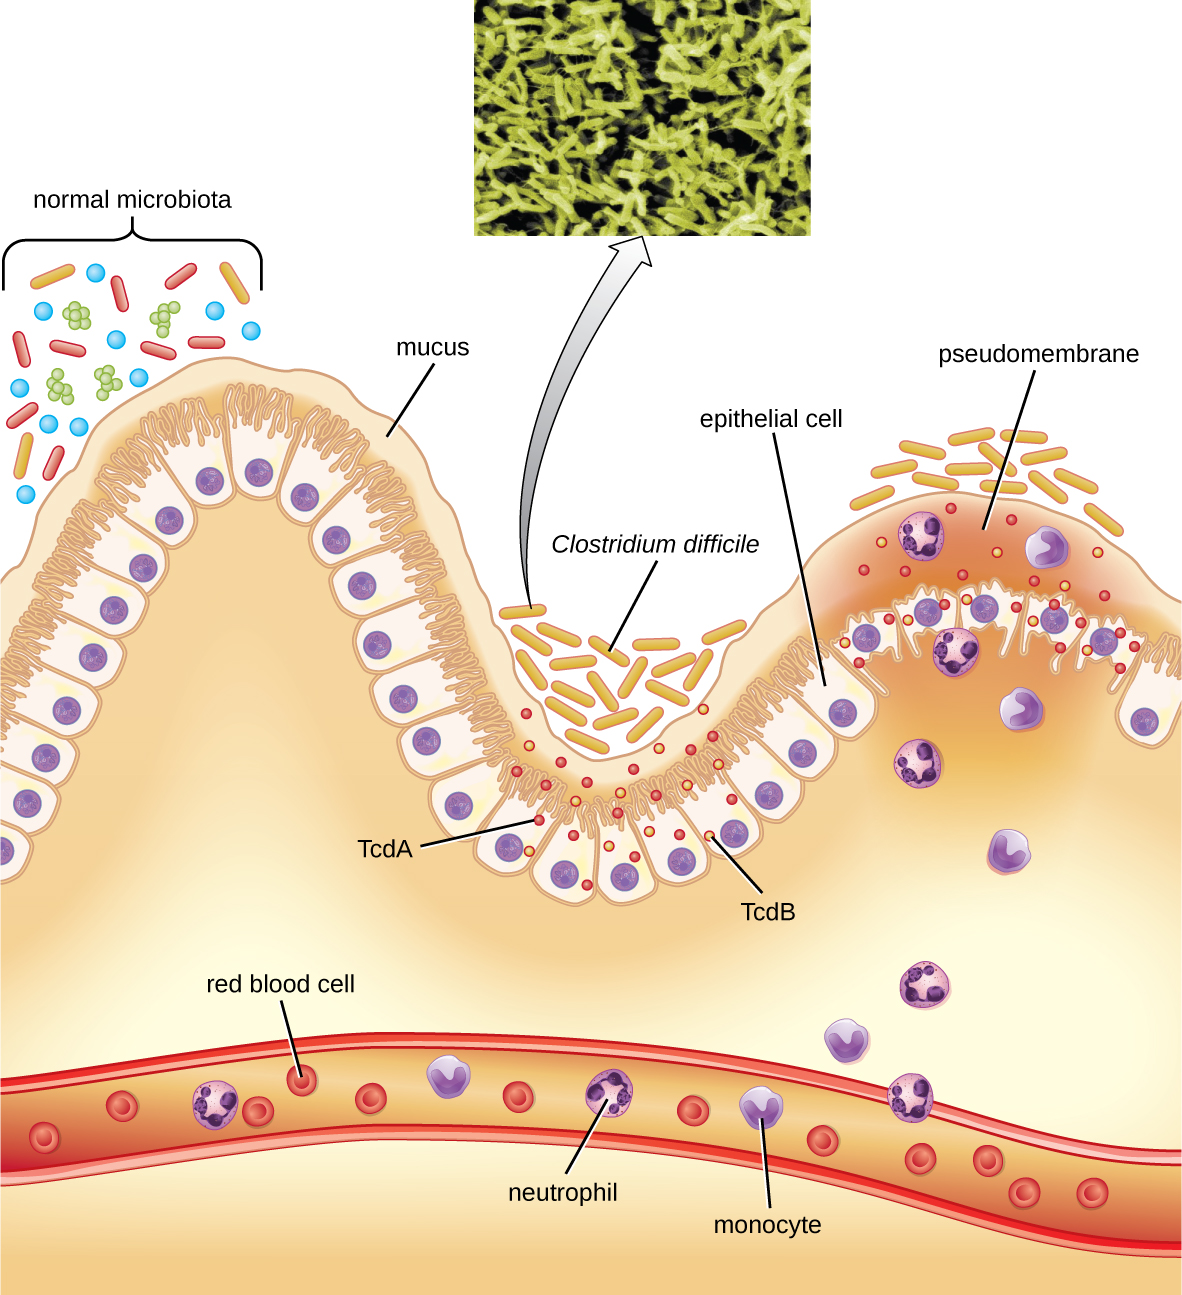 A diagram showing the lining of the stomach. At the very bottom is a blood vessel with red blood cells, neutrophils, and monocytes. At the top is a wavy layer of epithelial cells covered in mucous. A variety of bacteria (different shapes and colors to indicate different species) are seen on the mucus. In one region is a cluster of rod shaped cells labeled Clostridium difficile that release small dots labeled TcdA and TcdB. These create a pseudomembrane that is a swelling above destroyed epithelial cells. In response neutrophils and monocytes released.